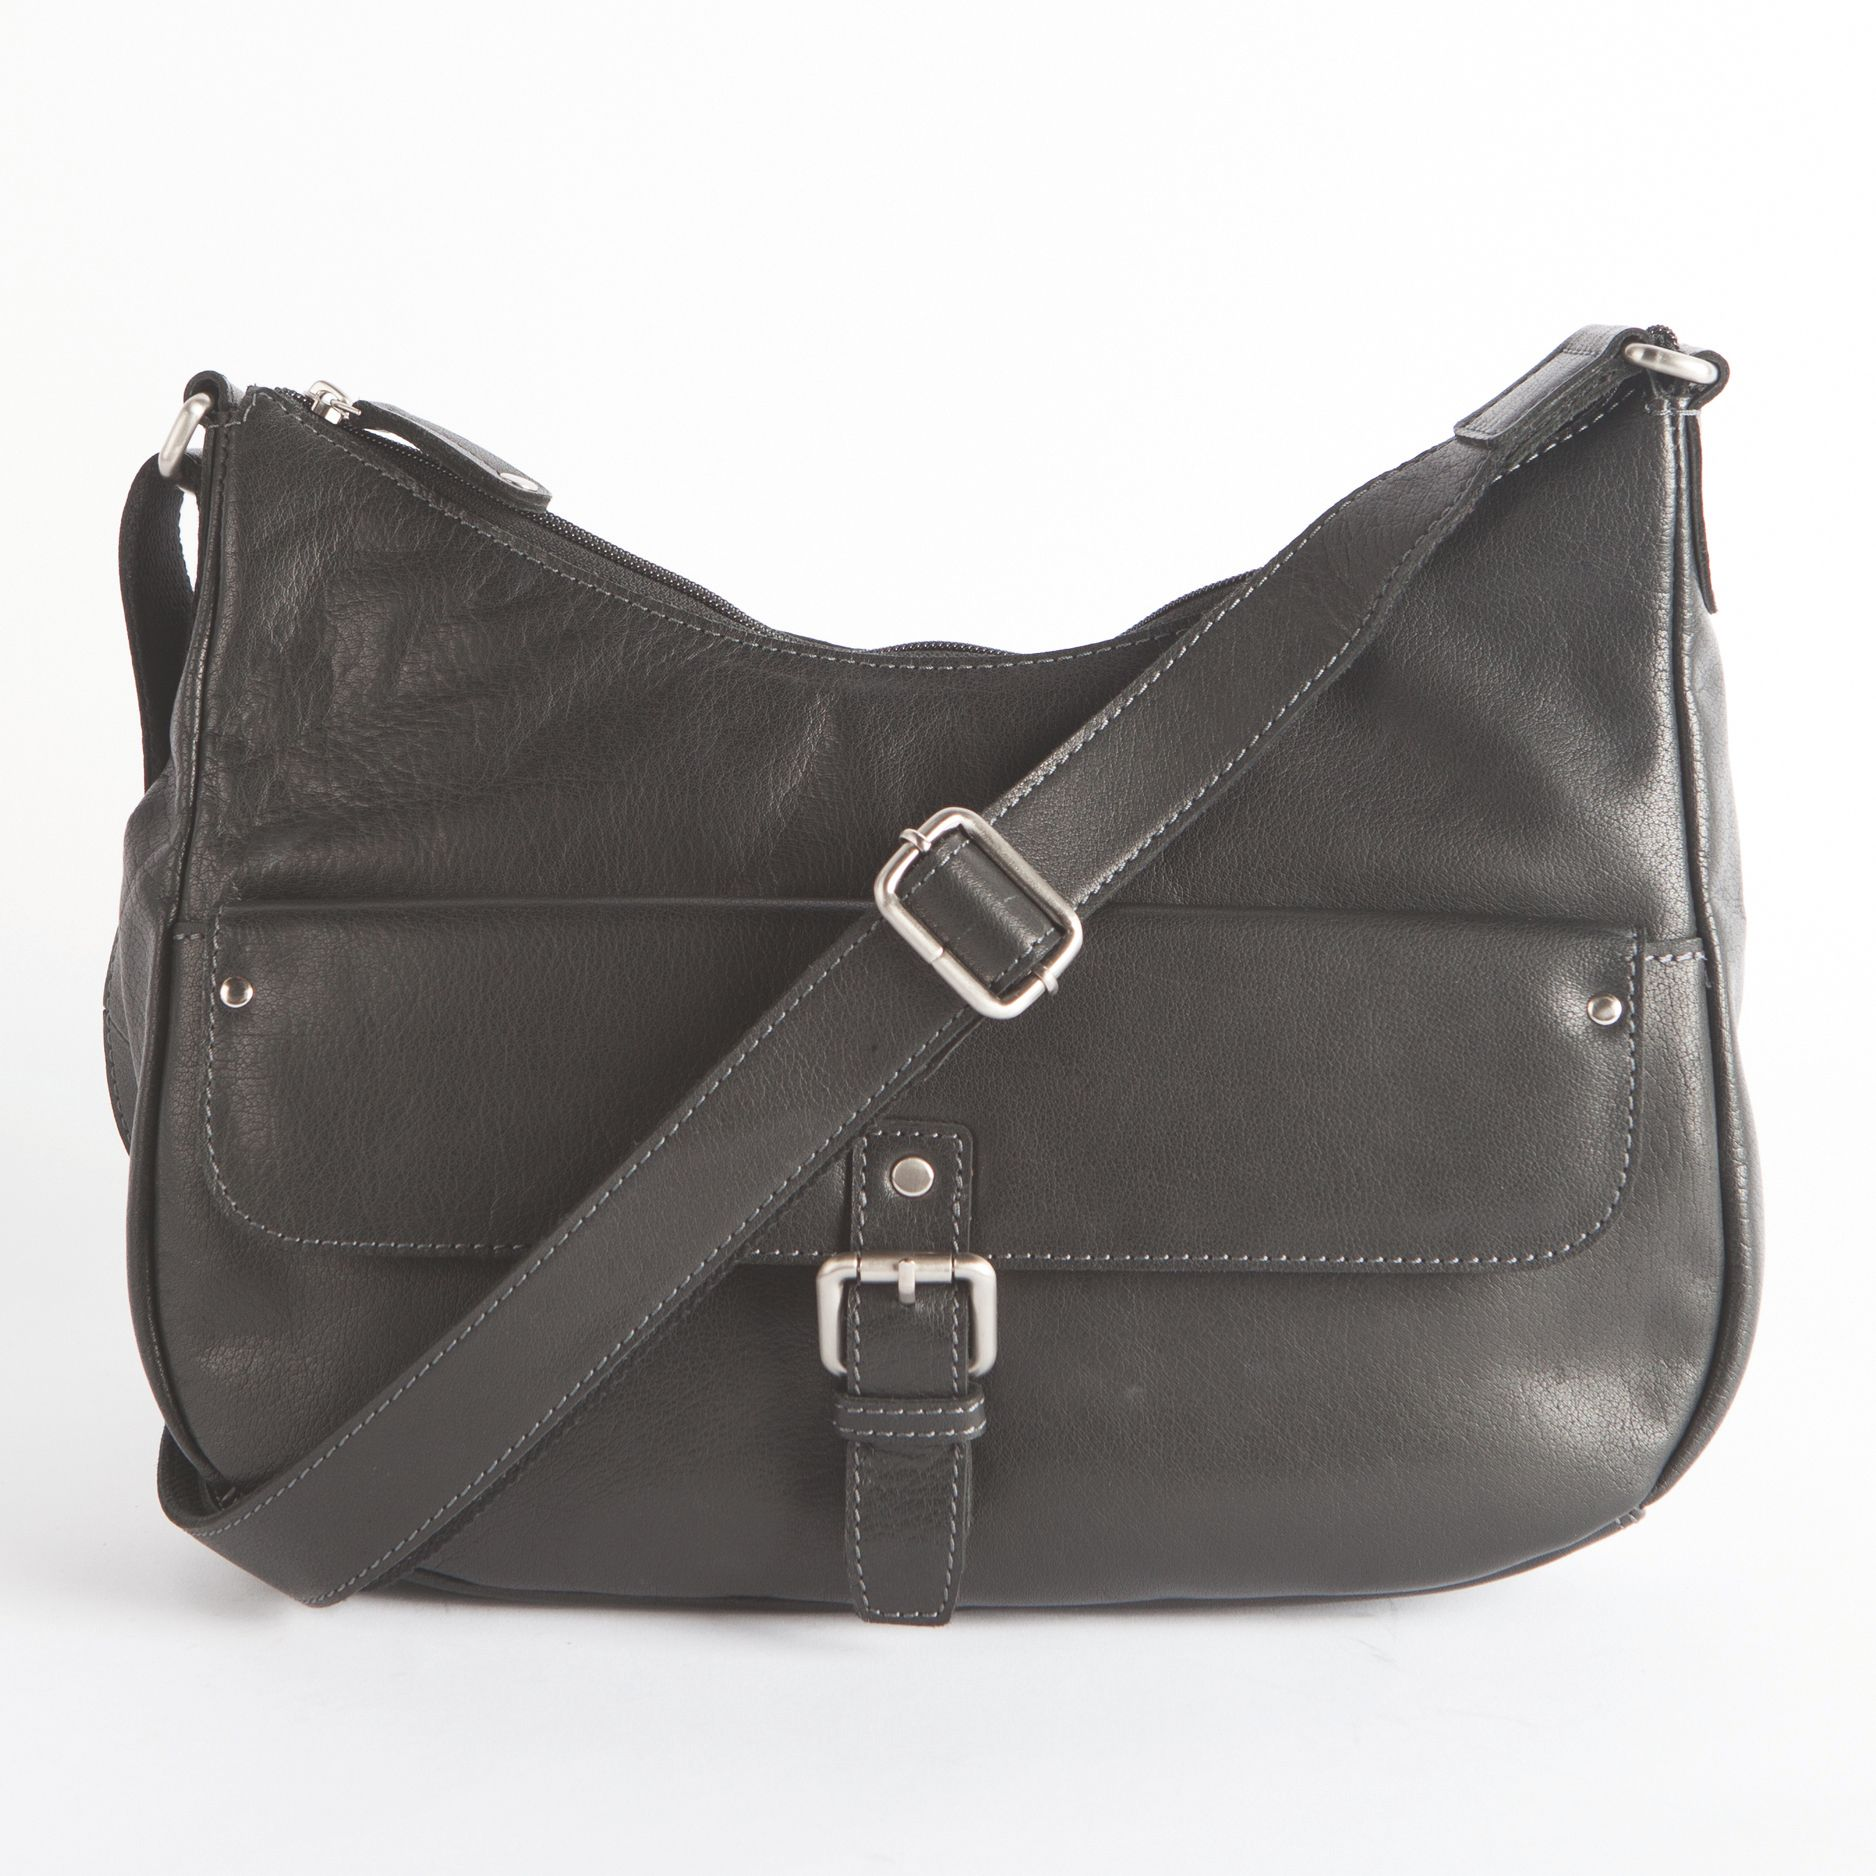 Alba shoulder bag